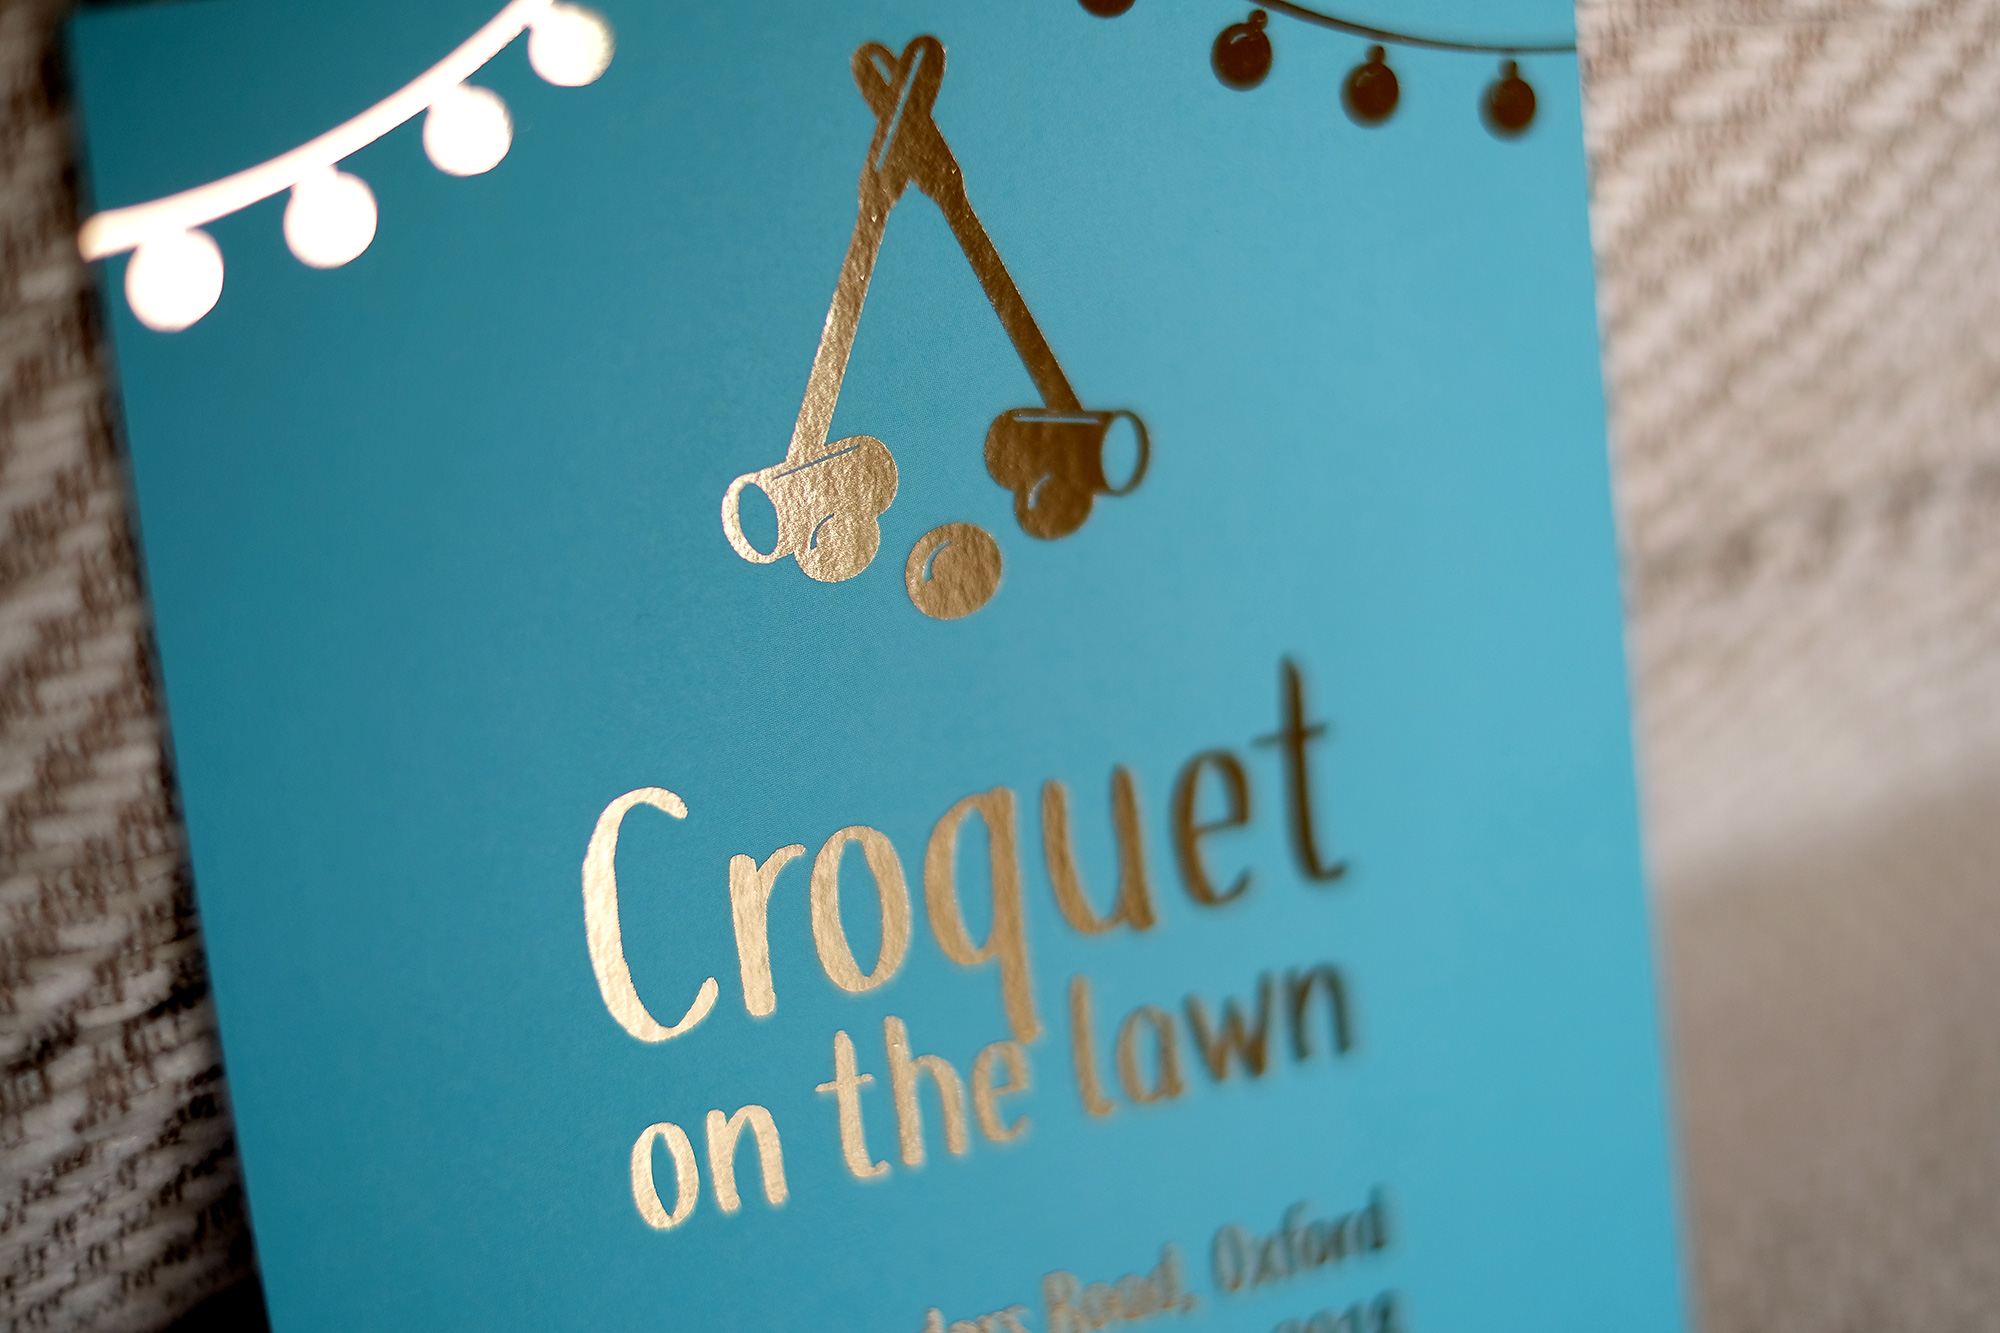 Croquet on the lawn – foiled invitations